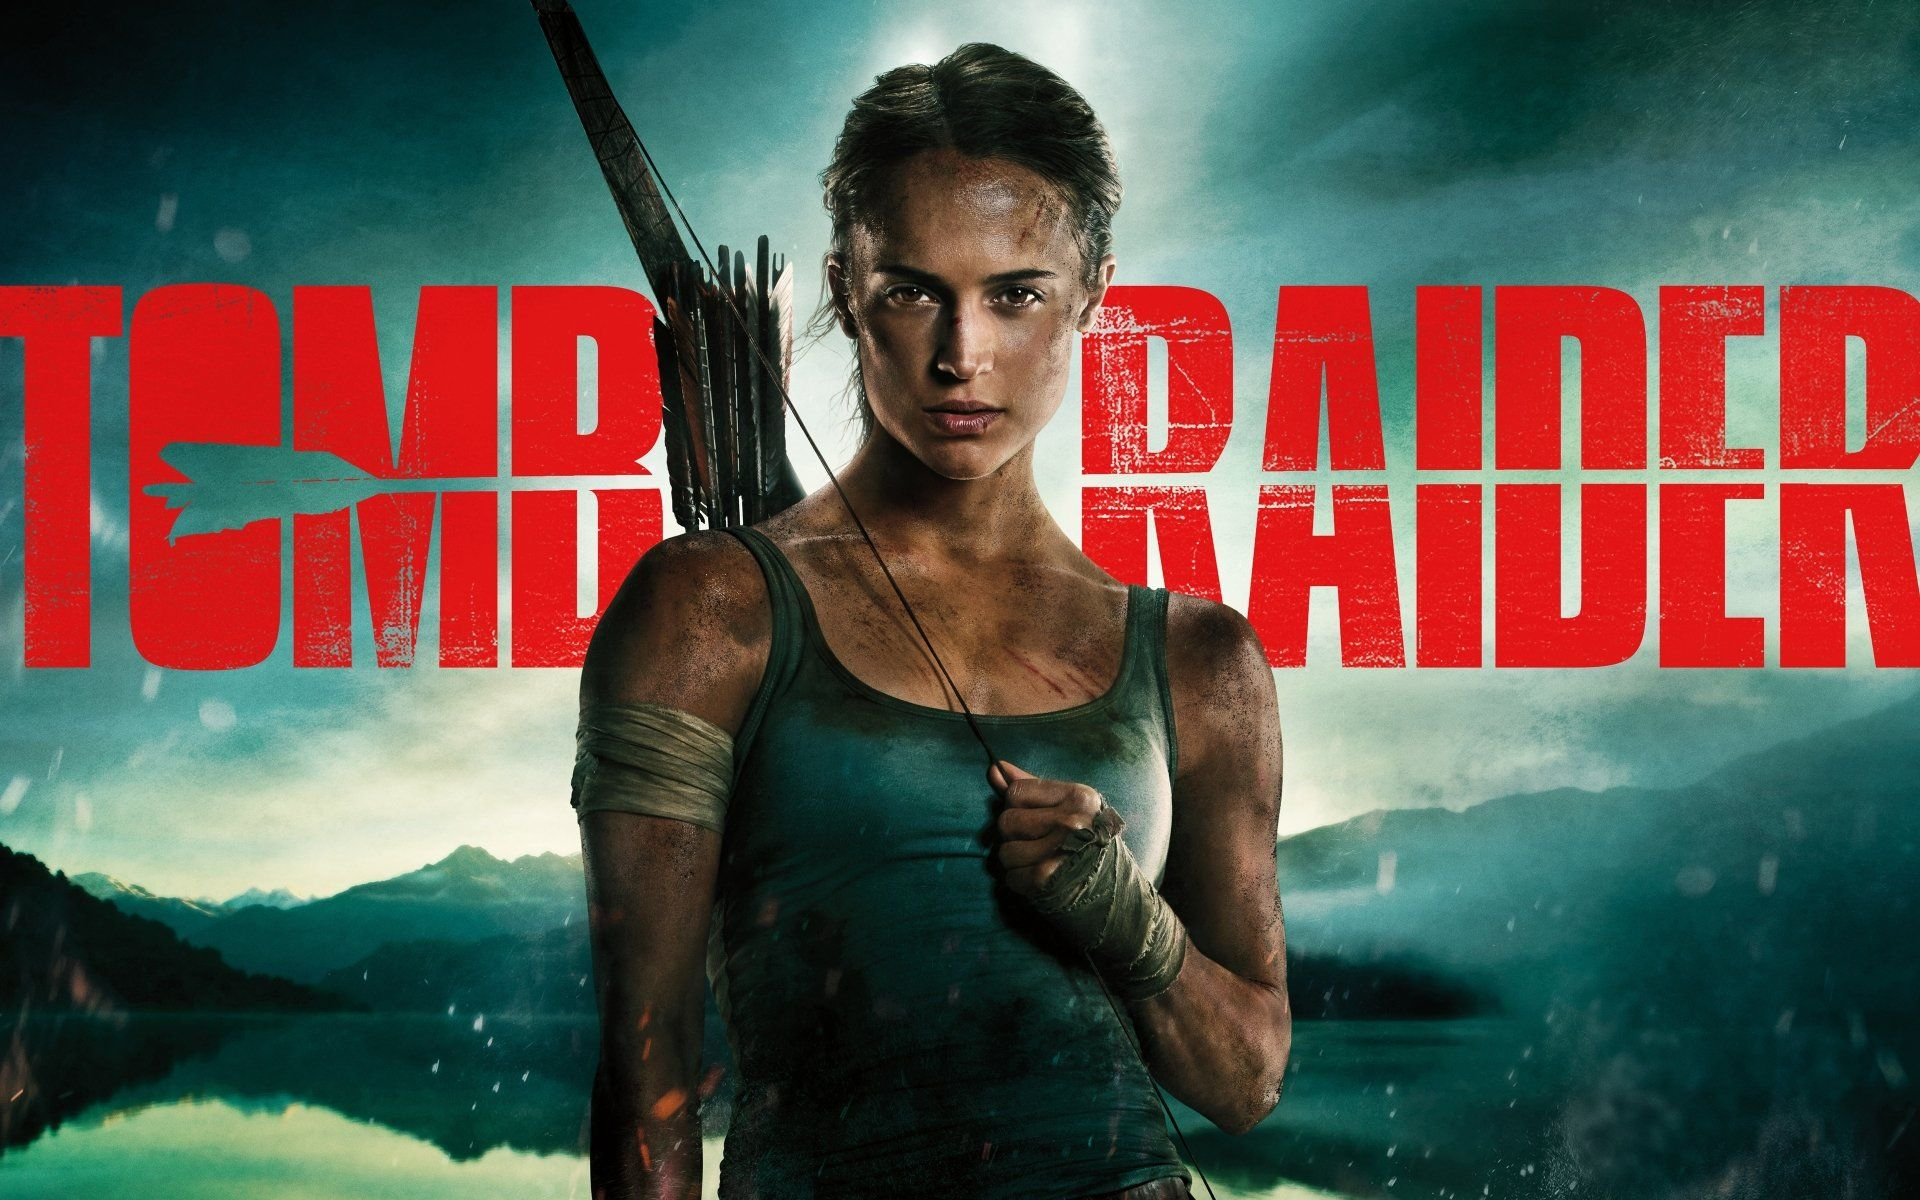 lara croft full movie download